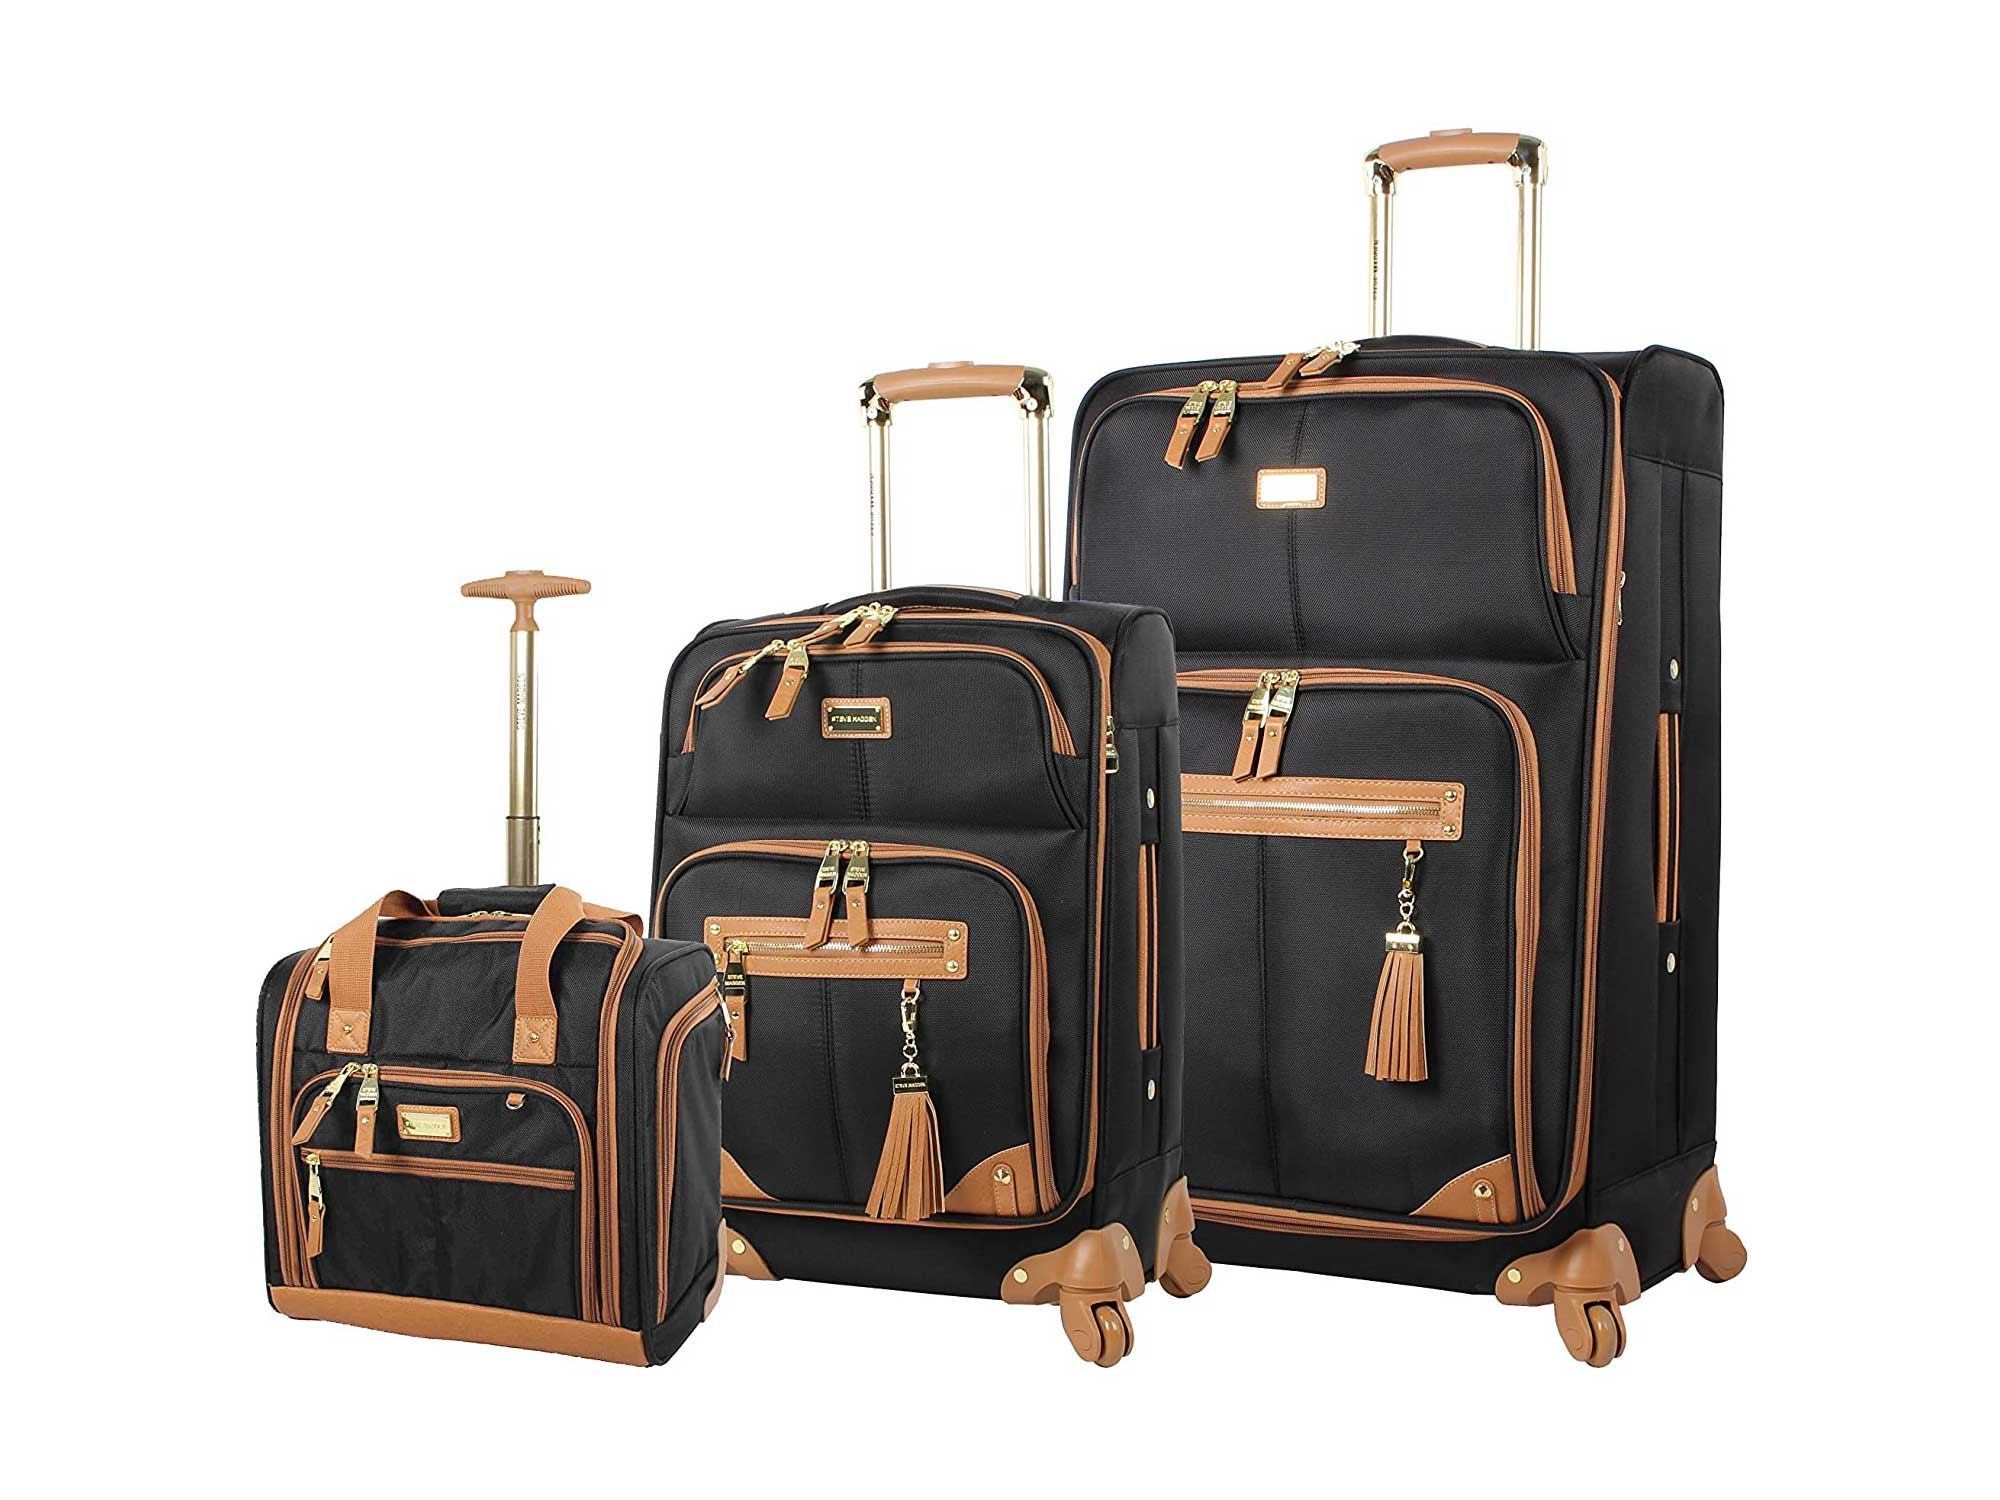 Steve Madden Designer Luggage Collection- 3 Piece Softside Expandable Lightweight Spinner Suitcases- Travel Set includes Under Seat Bag, 20-Inch Carry on & 28-Inch Checked Suitcase